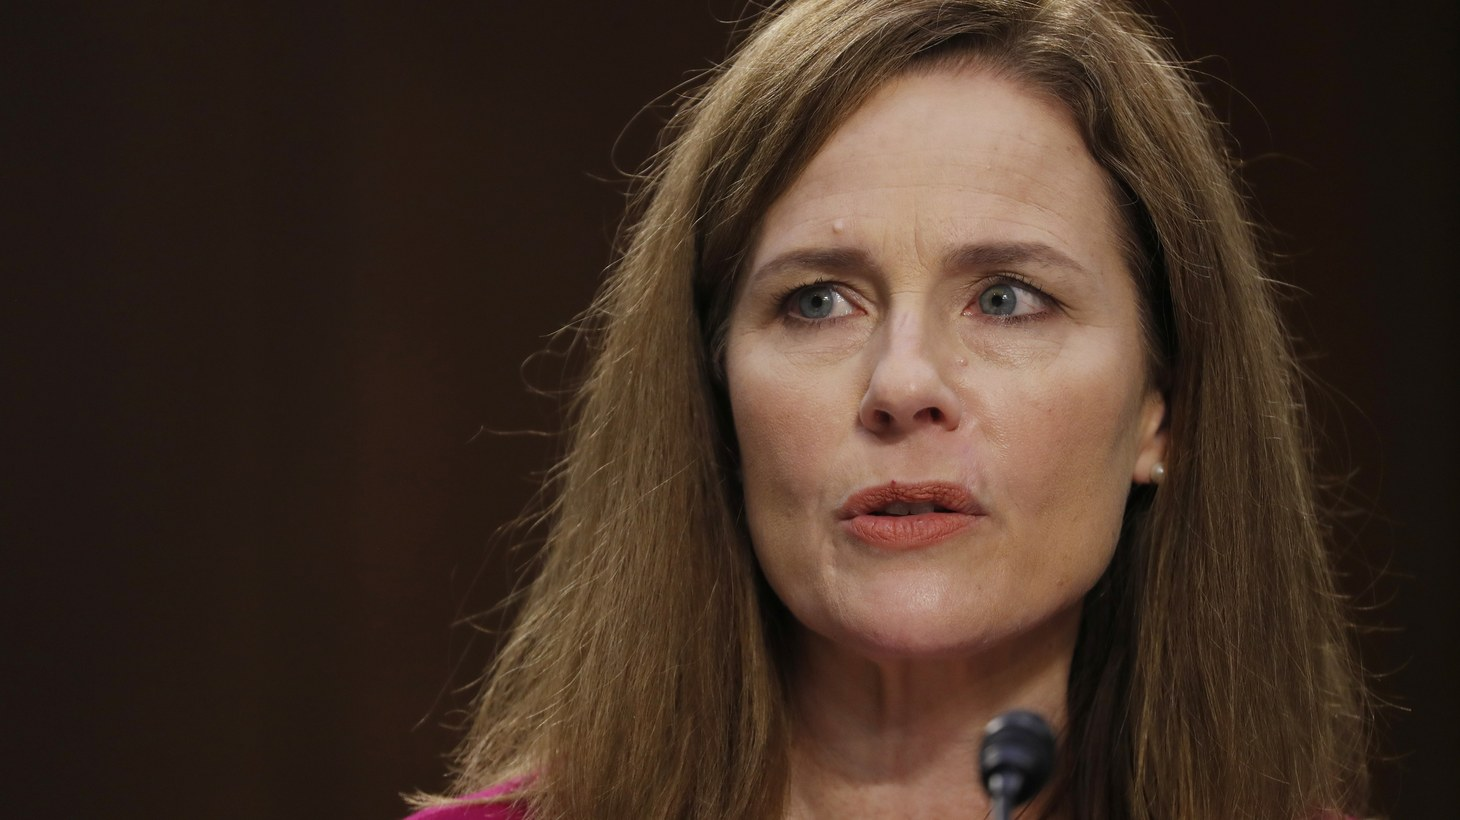 U.S. Supreme Court nominee Amy Coney Barrett attends a confirmation hearing before the Senate Judiciary Committee on Capitol Hill in Washington, D.C., U.S., October 12, 2020.